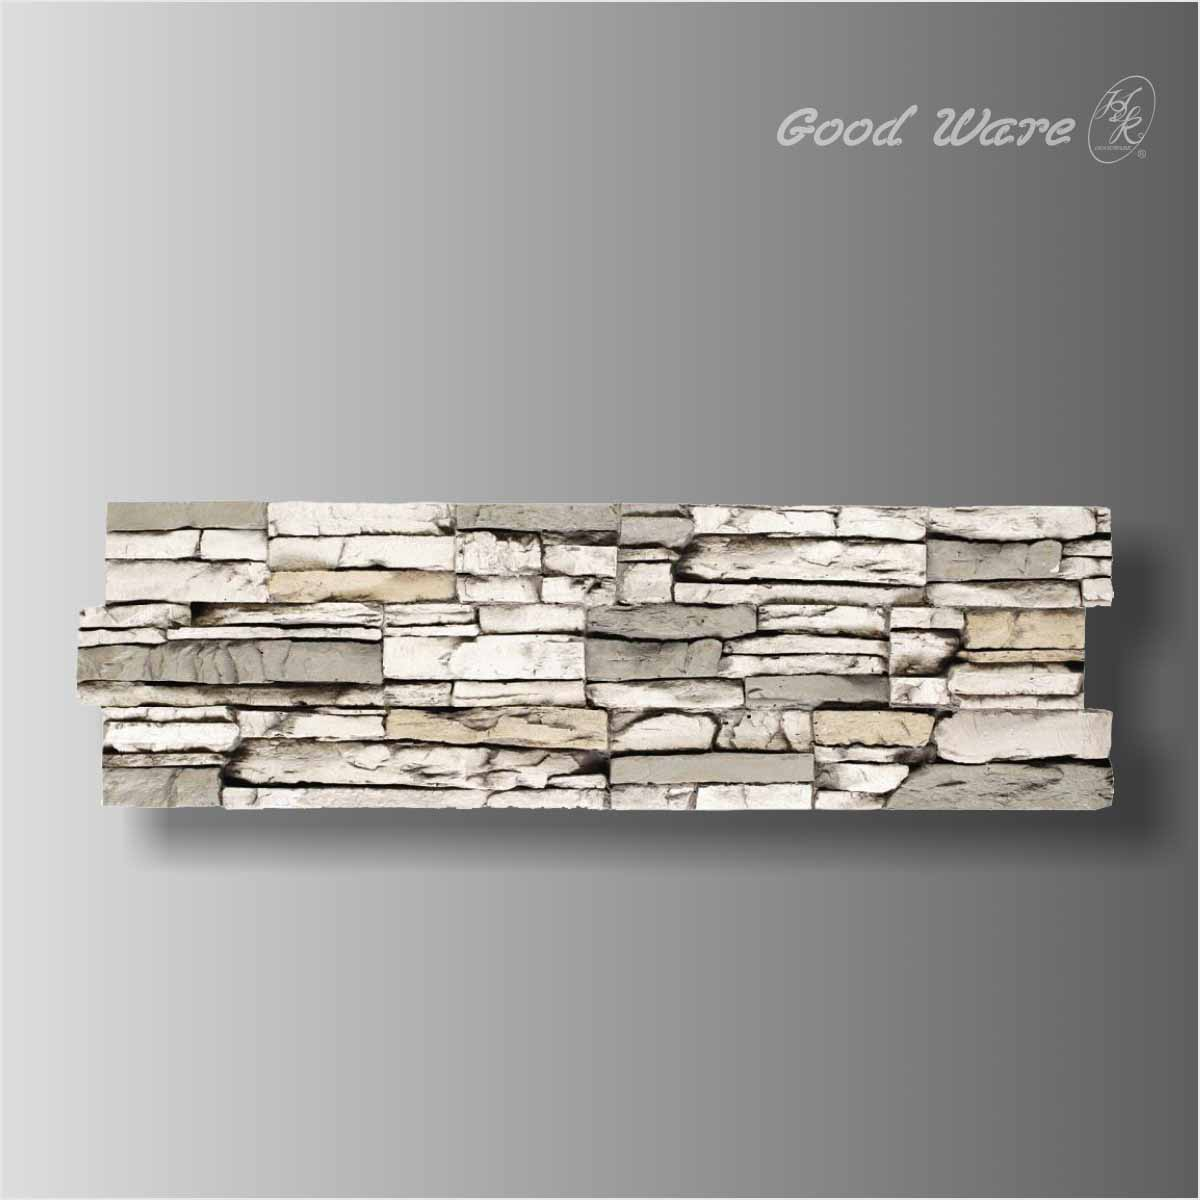 Faux stone living room background for sale